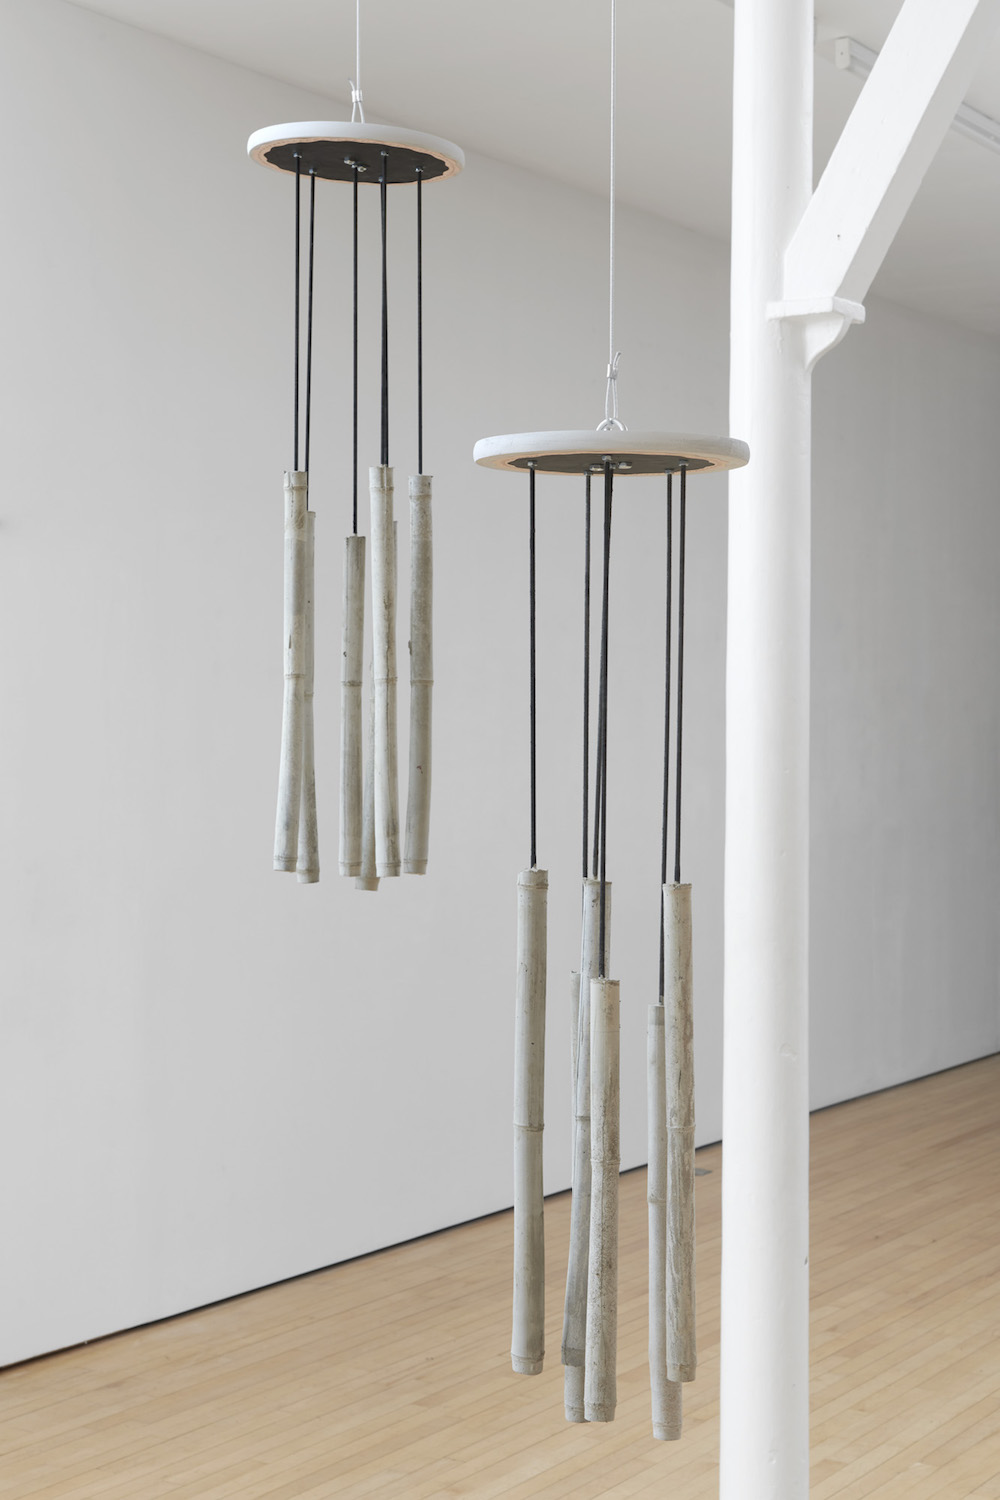 Charlie Godet Thomas, Didi and Gogo, 2019. Motor, steel cable, cast concrete, threaded steel rods, nuts, washers, wood, paint, paper, ink.